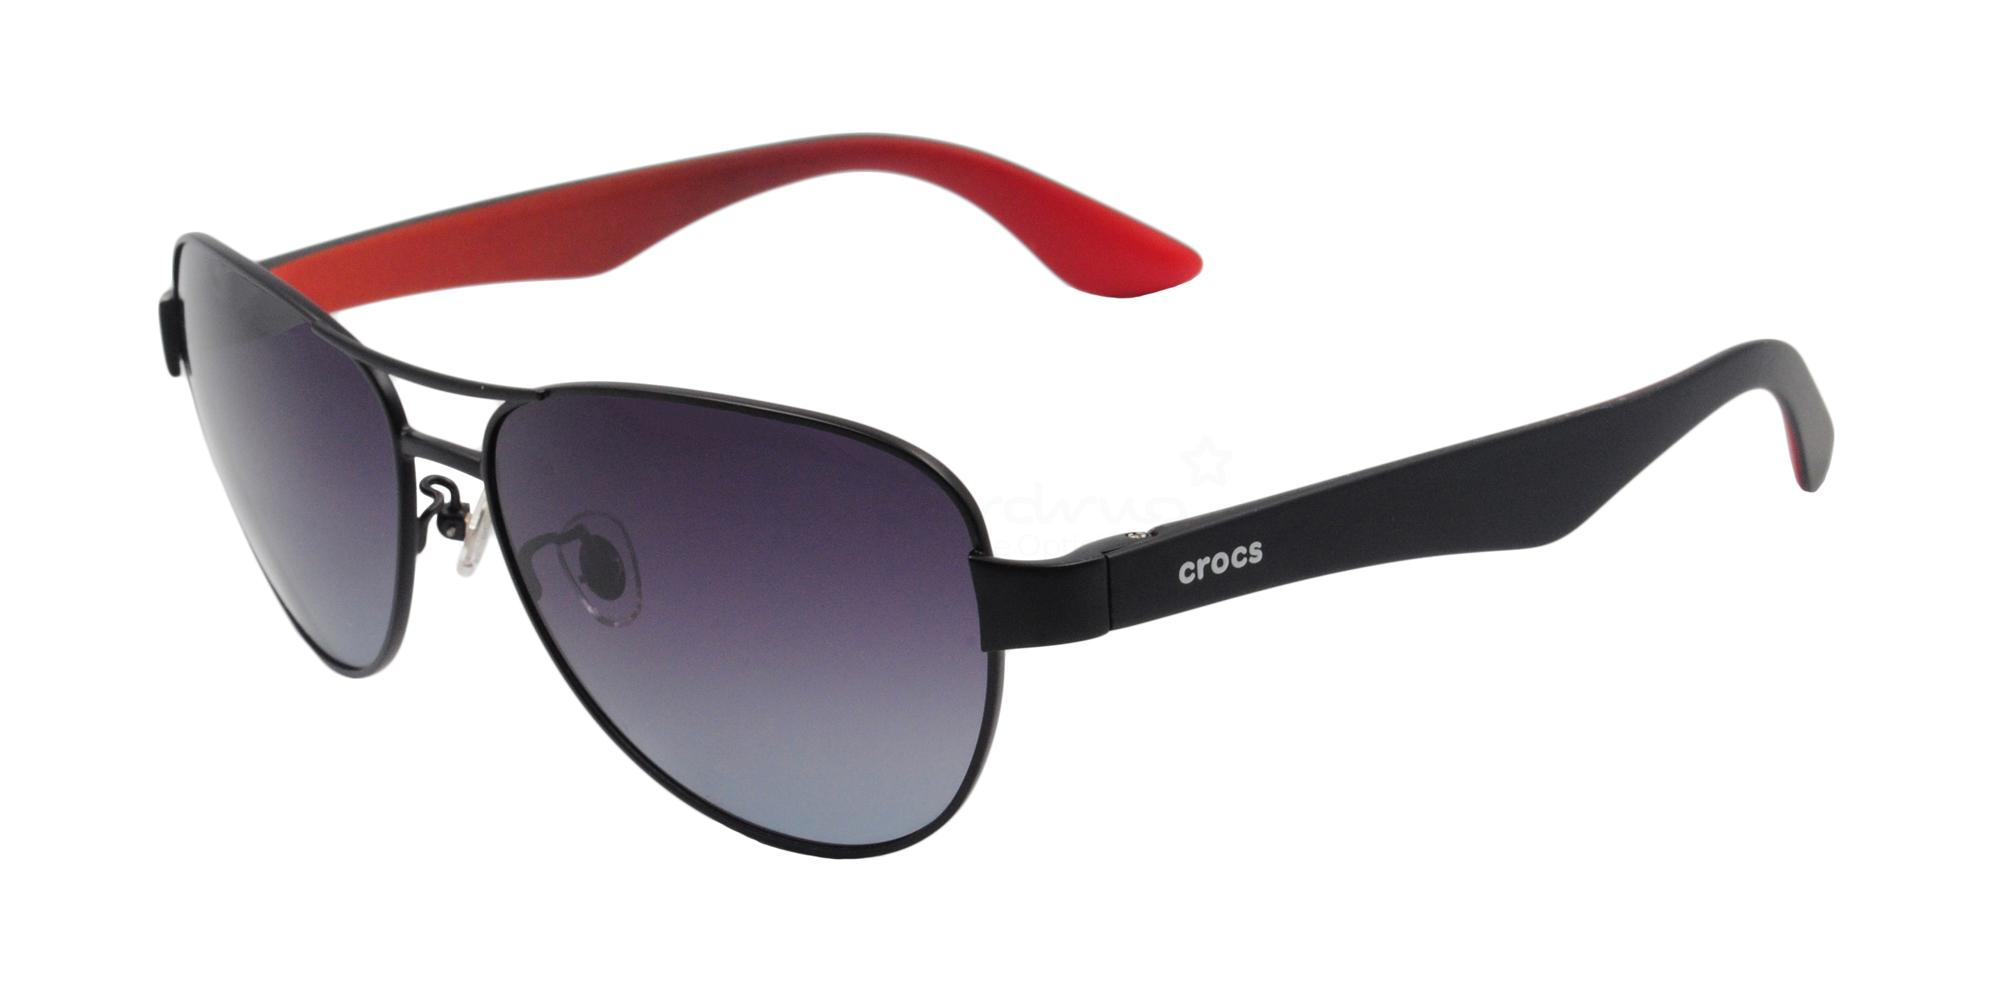 20BK CS4111 Sunglasses, Crocs Eyewear